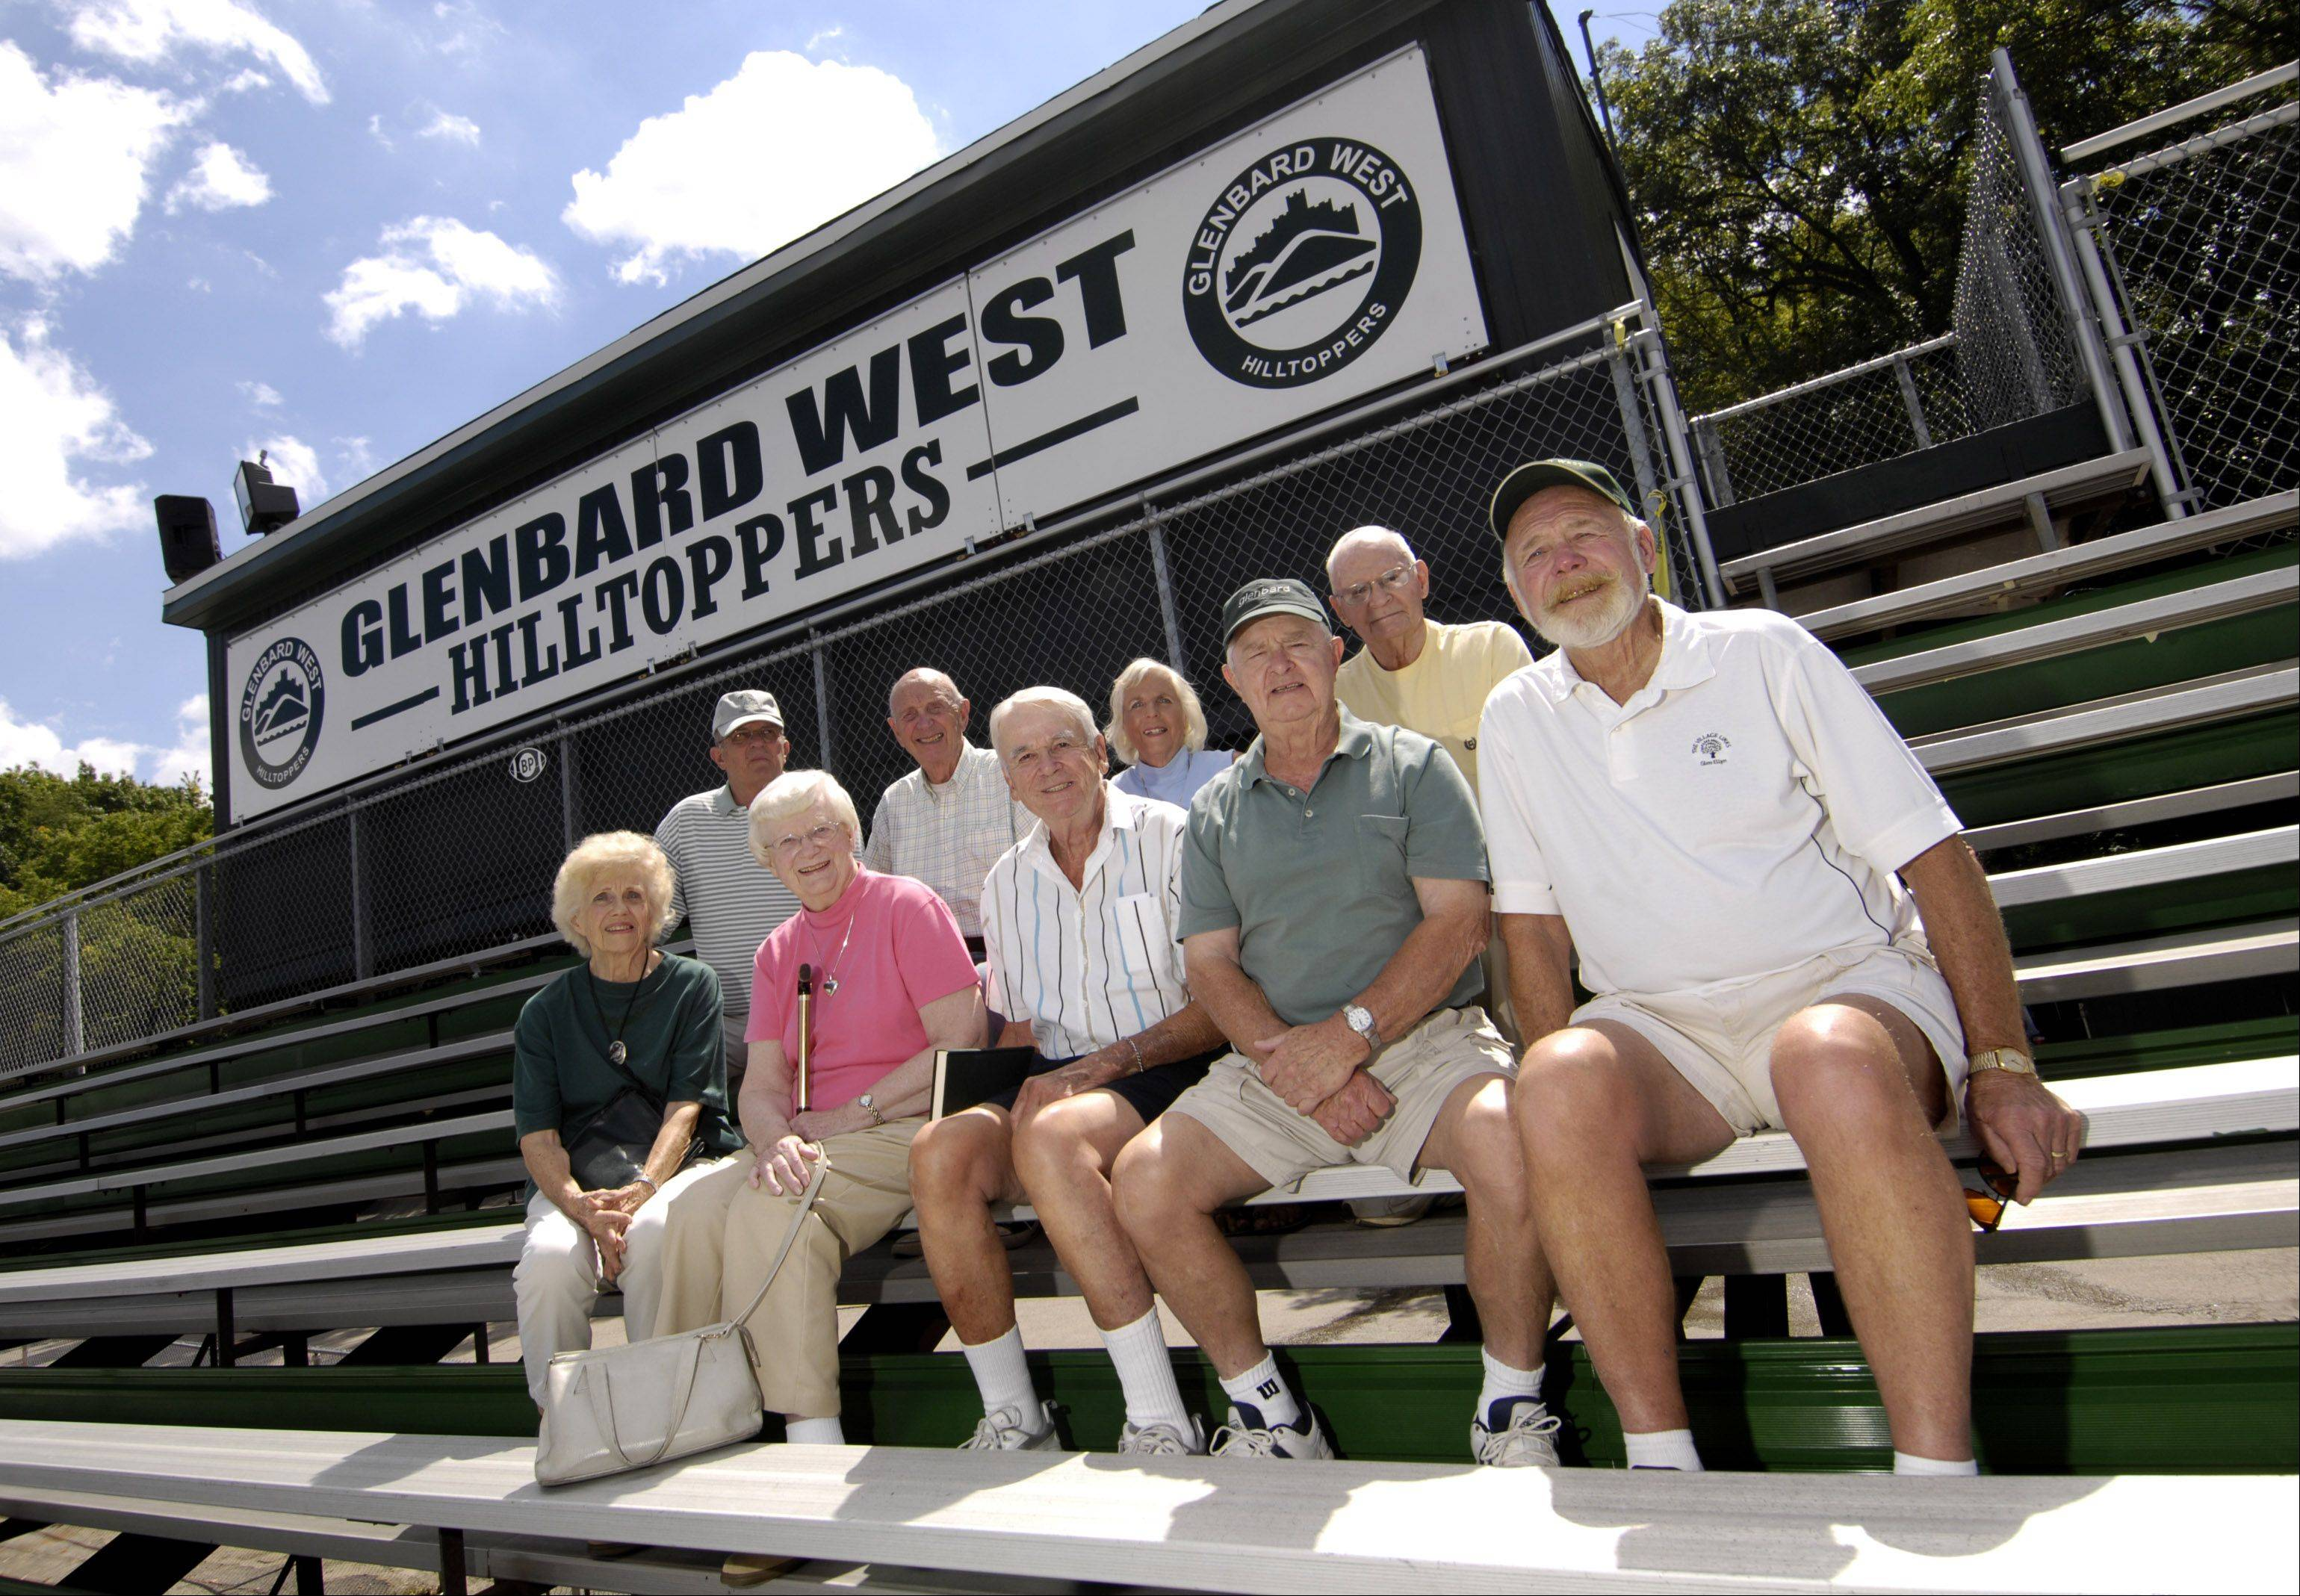 Glen Ellyn fans renew rivalry against Wheaton with nationally televised game